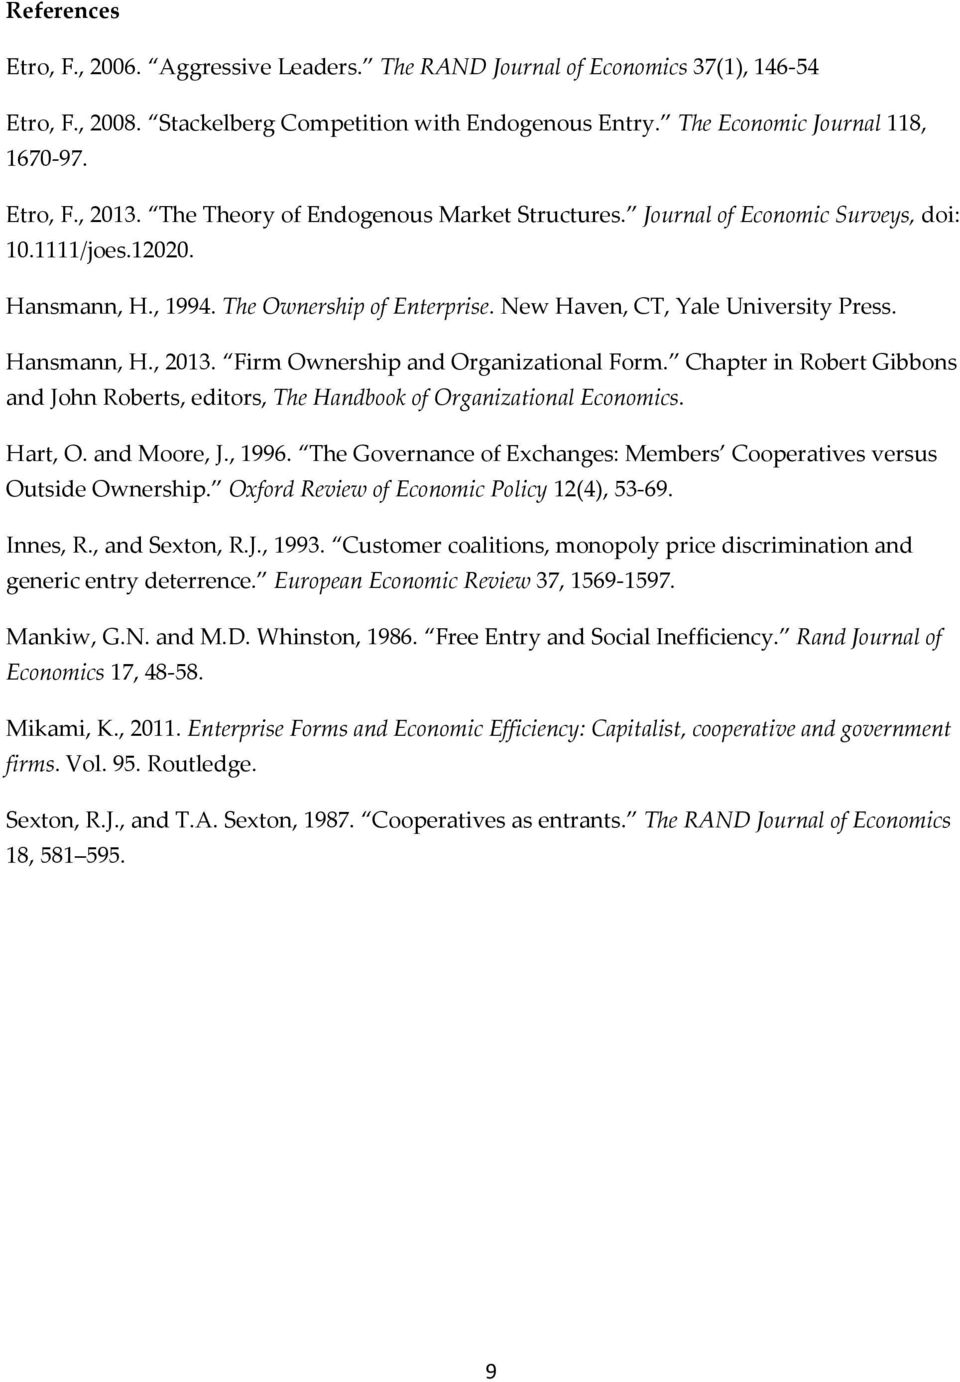 Fir Ownership and Organizational For. Chapter in Robert Gibbons and John Roberts, editors, The Handbook of Organizational Econoics. Hart, O. and Moore, J., 1996.